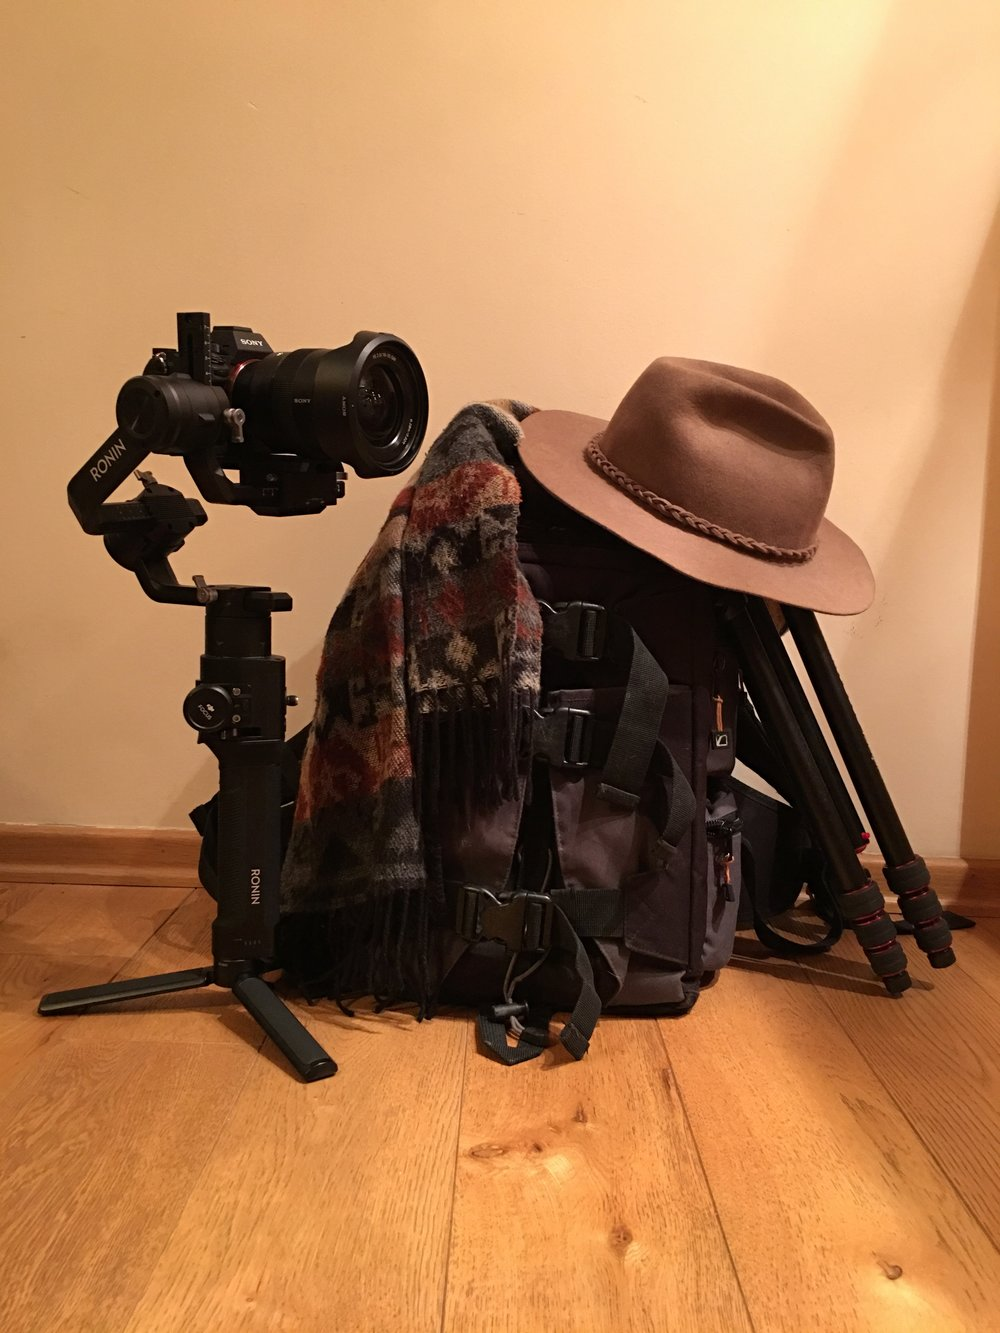 The Ultimate Travel Filmmaker's Kit